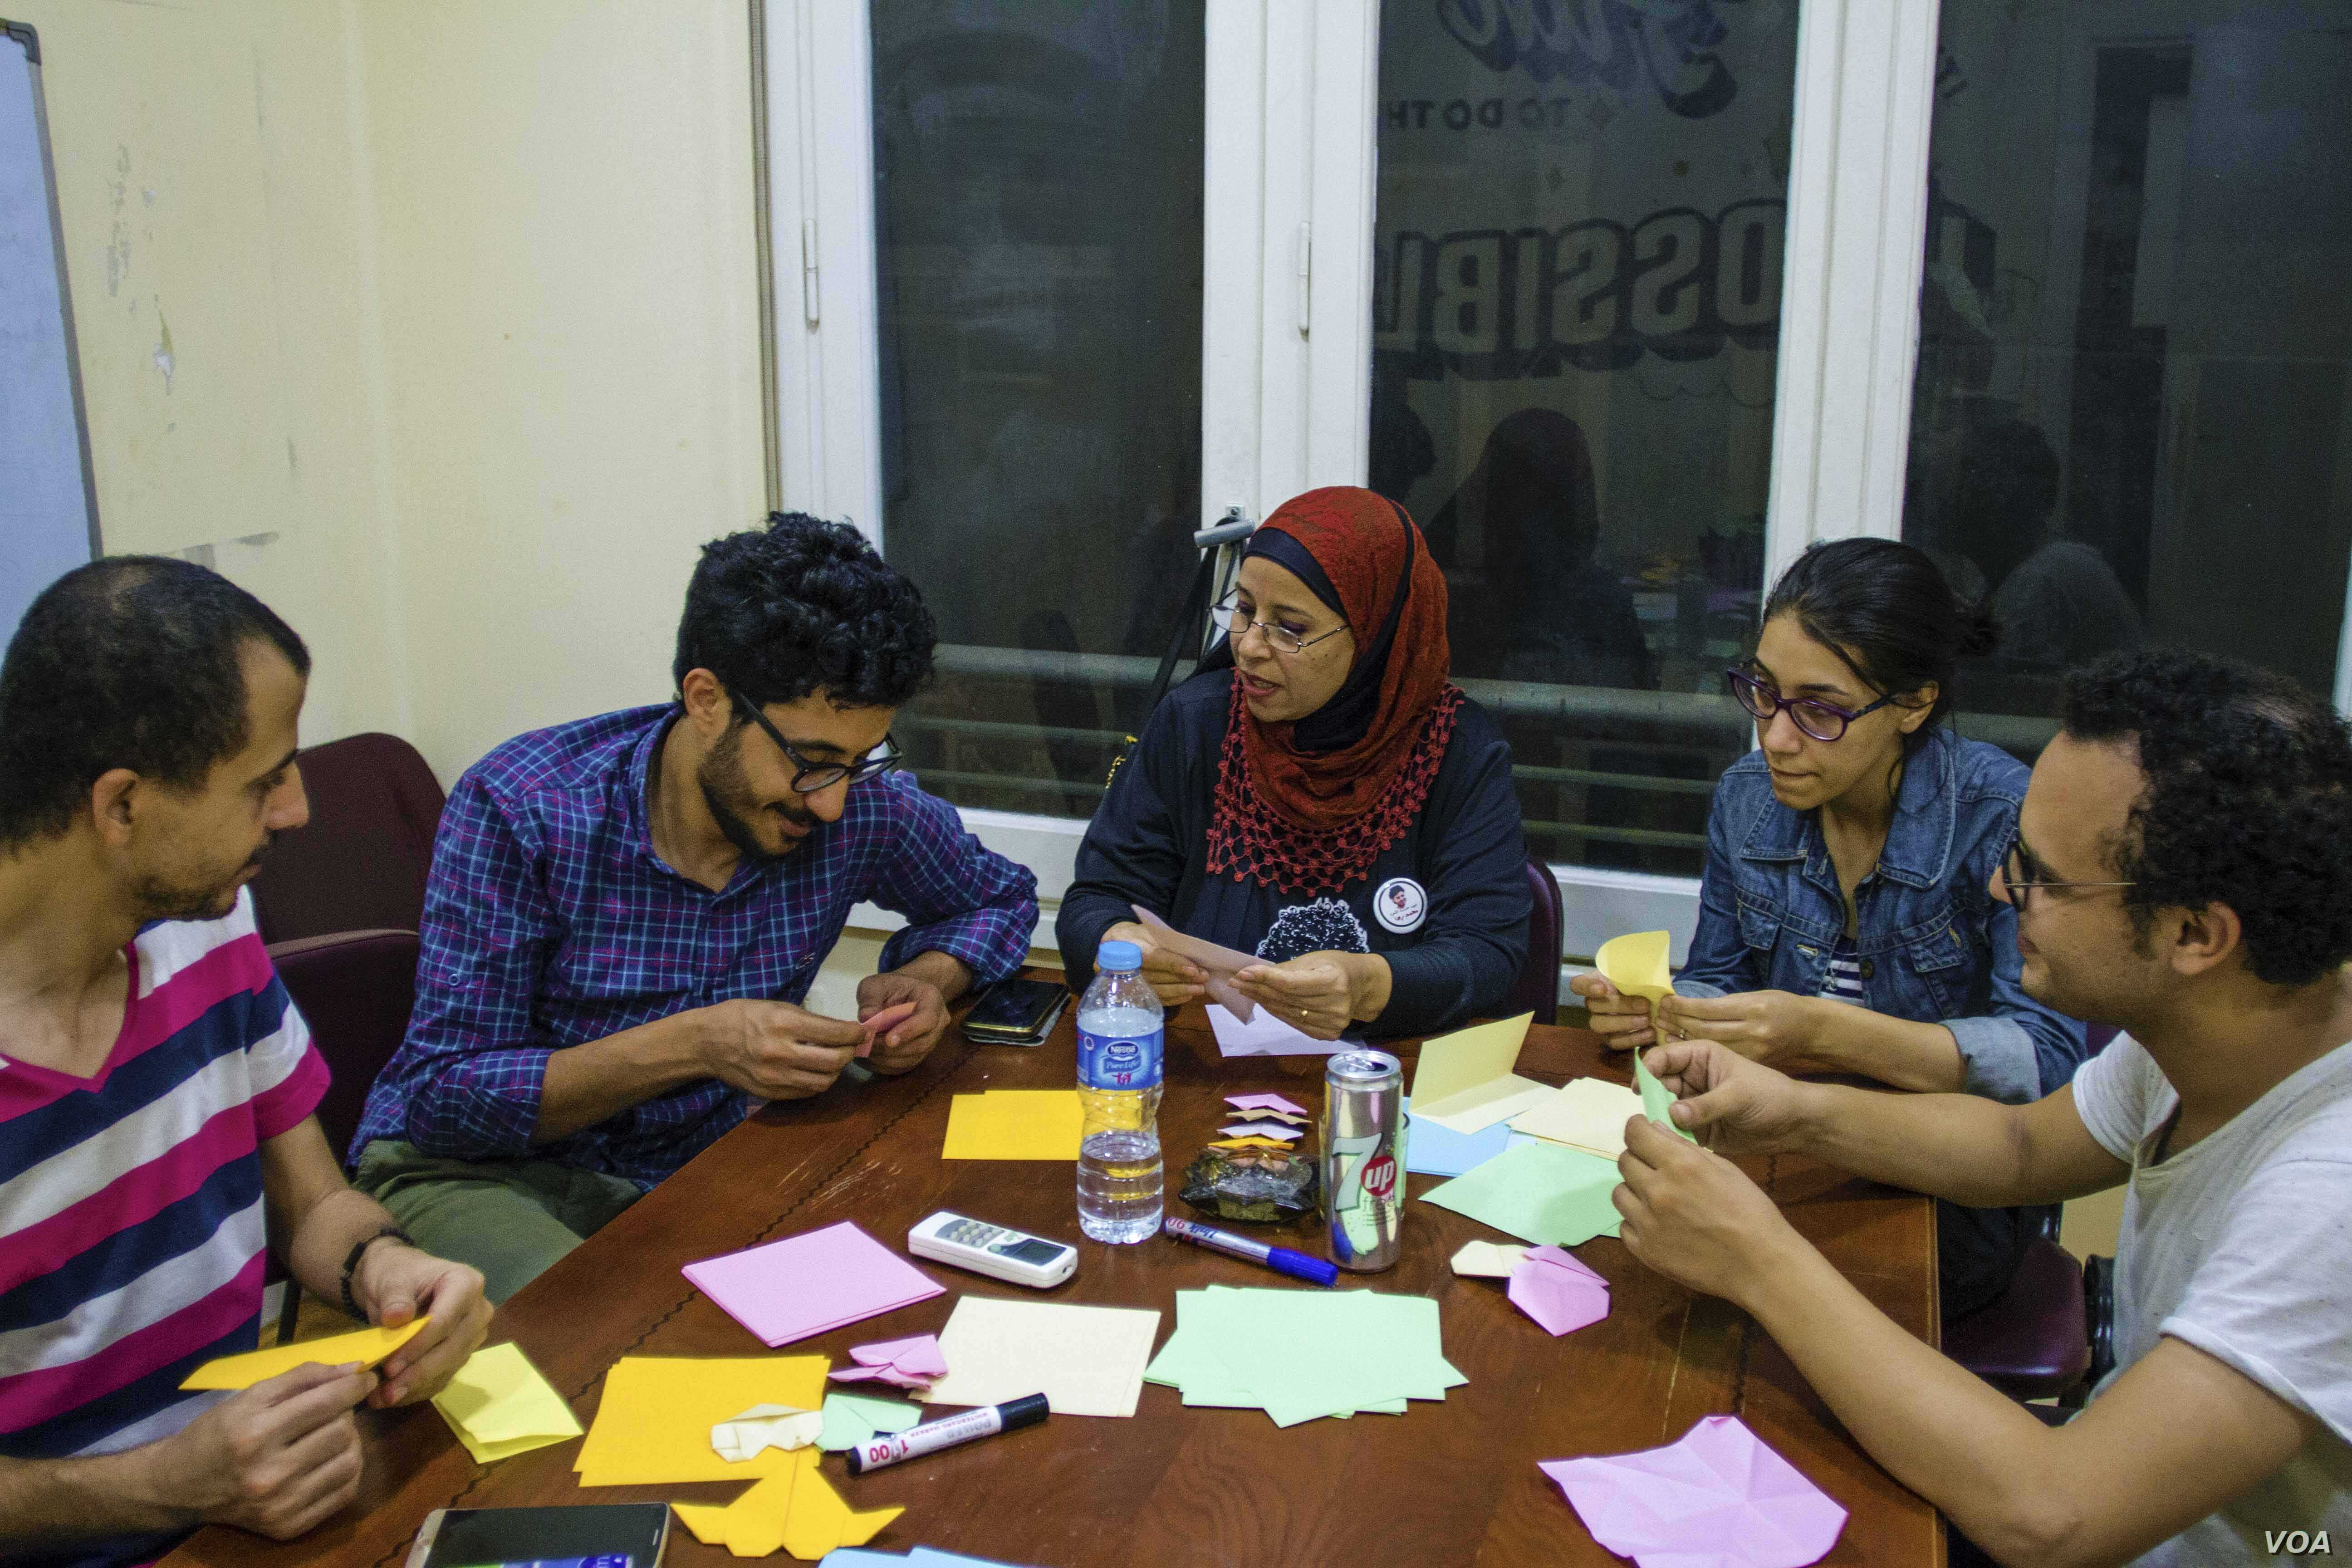 Every month new volunteers join the origami workshop to show solidarity with political prisoners. (H. Elrasam/VOA)